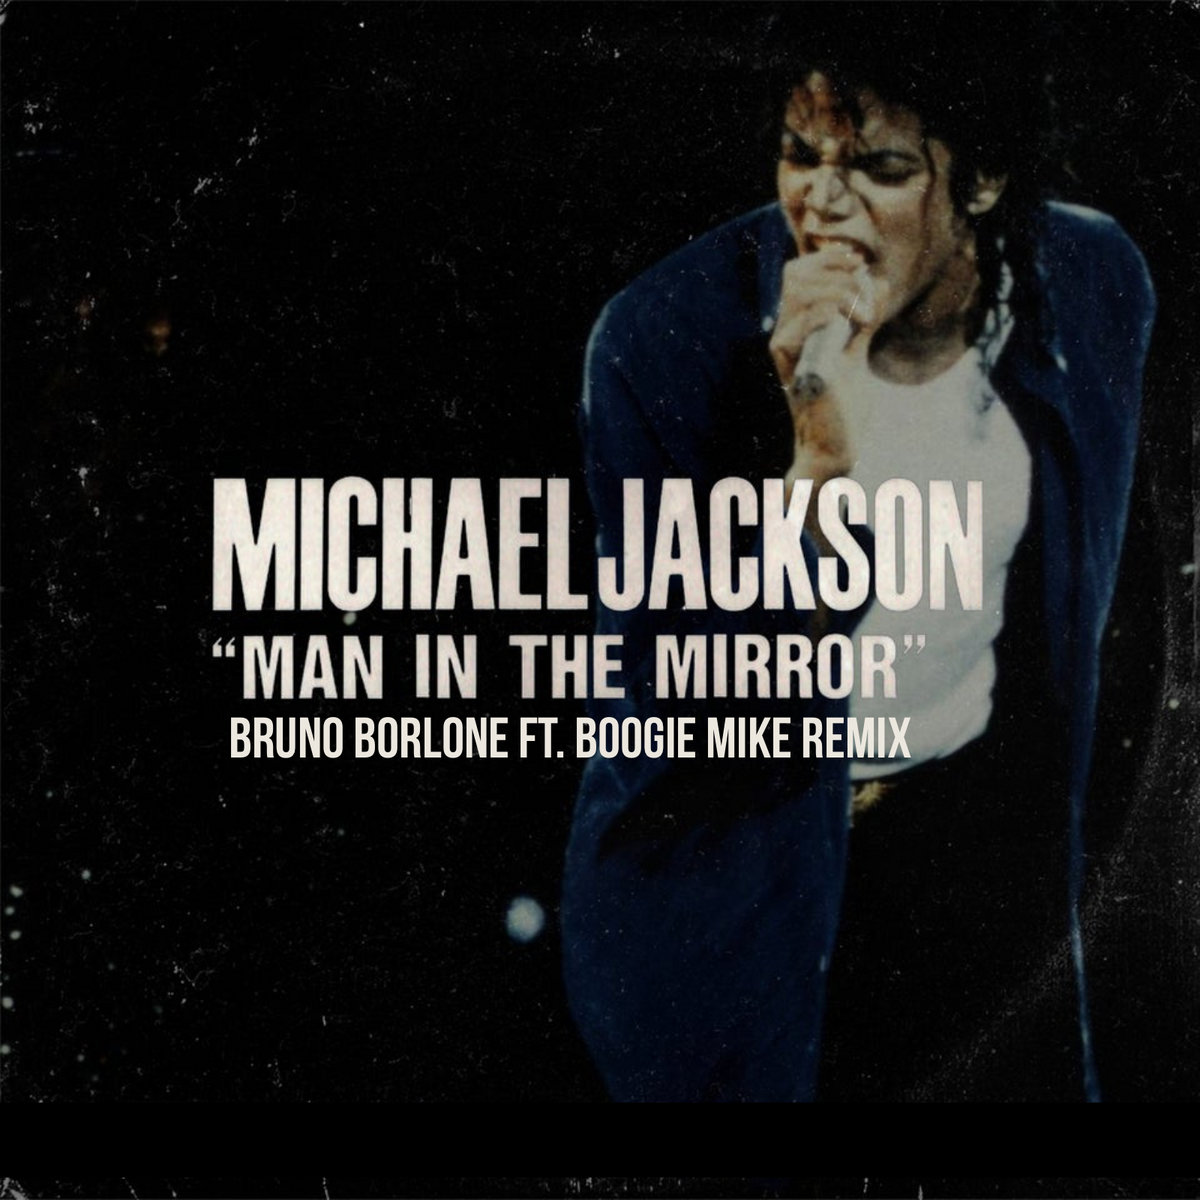 Michael Jackson Man In The Mirror Bruno Borlone Ft Boogie Mike